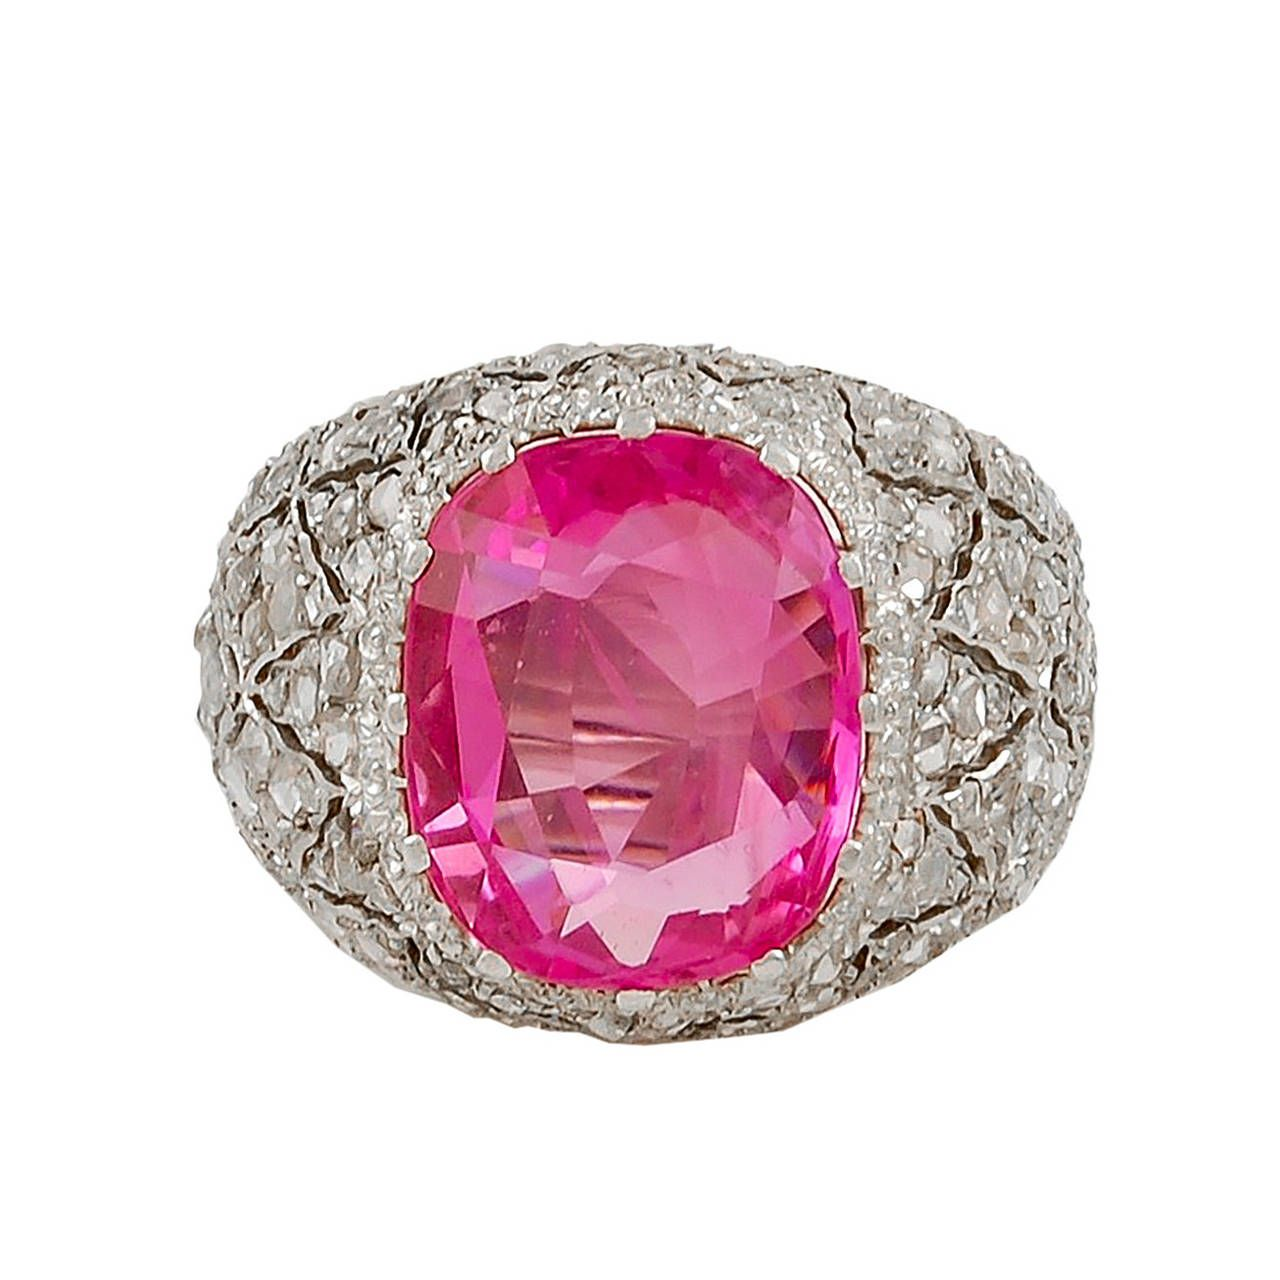 Buccellati Pink Sapphire Diamond Gold Dome Ring | From a unique ...